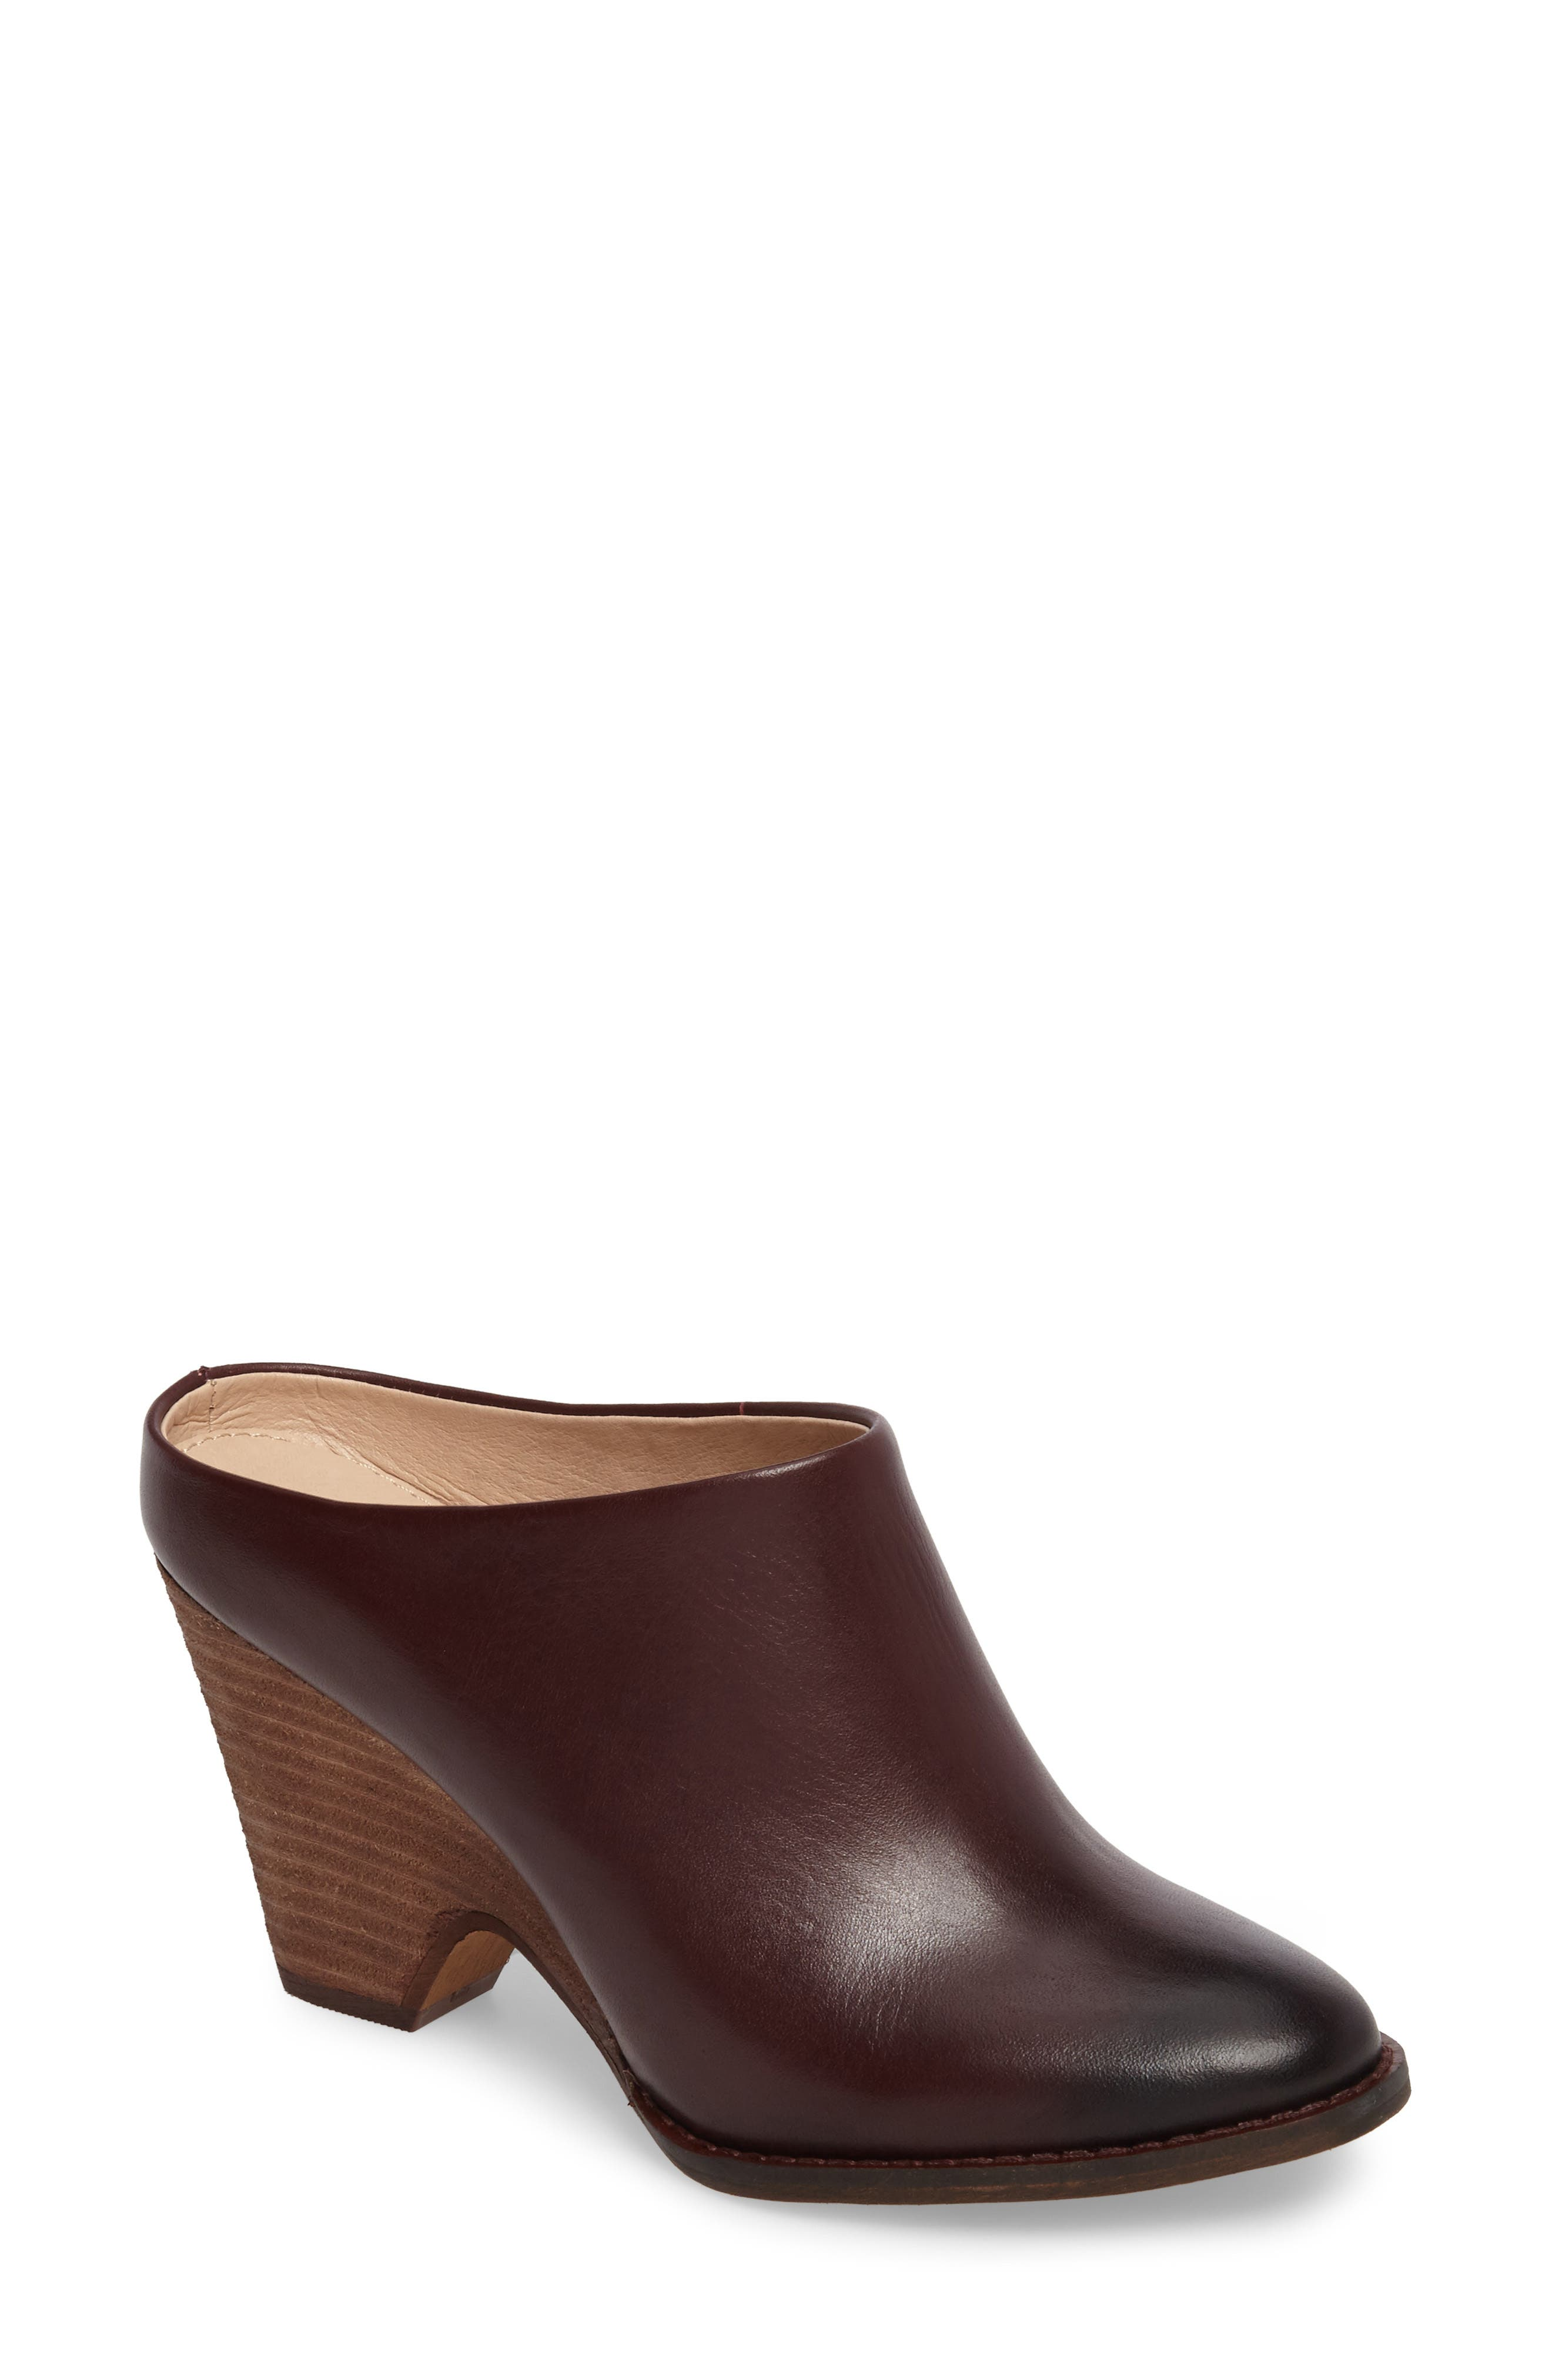 Kelsi Dagger Brooklyn Hocking Mule (Women)